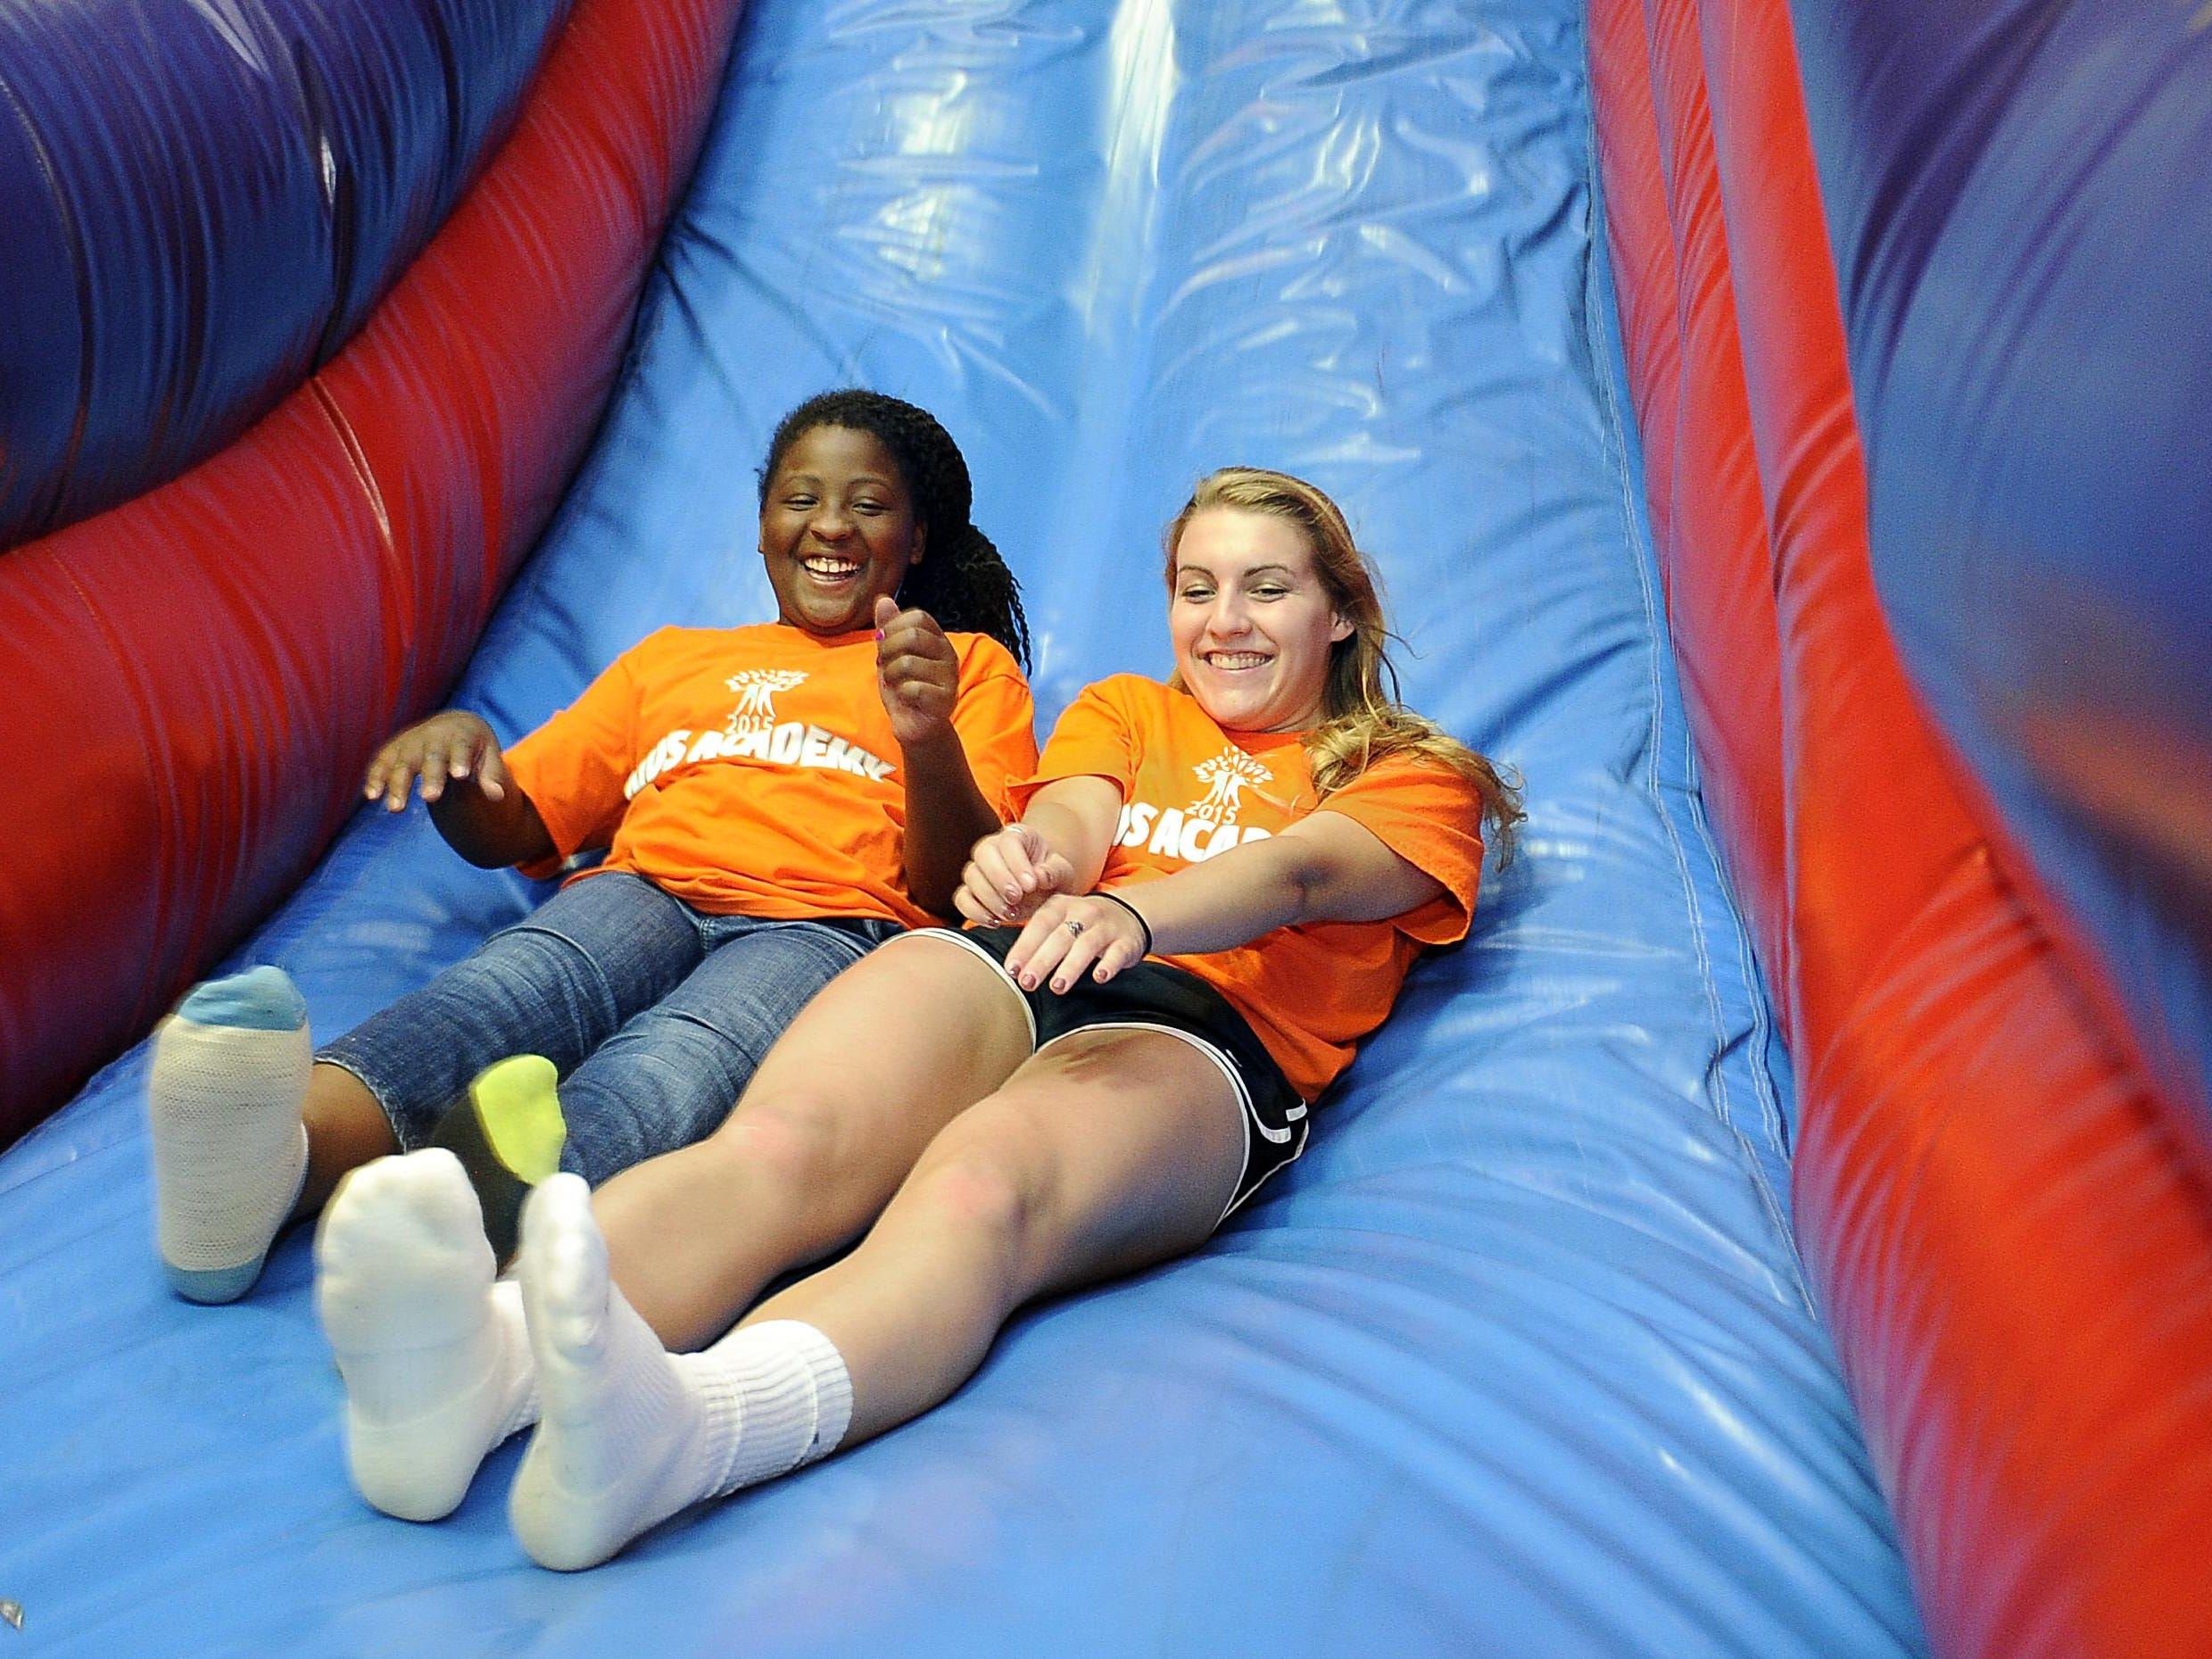 Kandayce Allen, 10, and Miller Fahey slide together at Pump It Up in Franklin. Fahey leads a summer camp for kids at Battle Ground Academy during the summer.